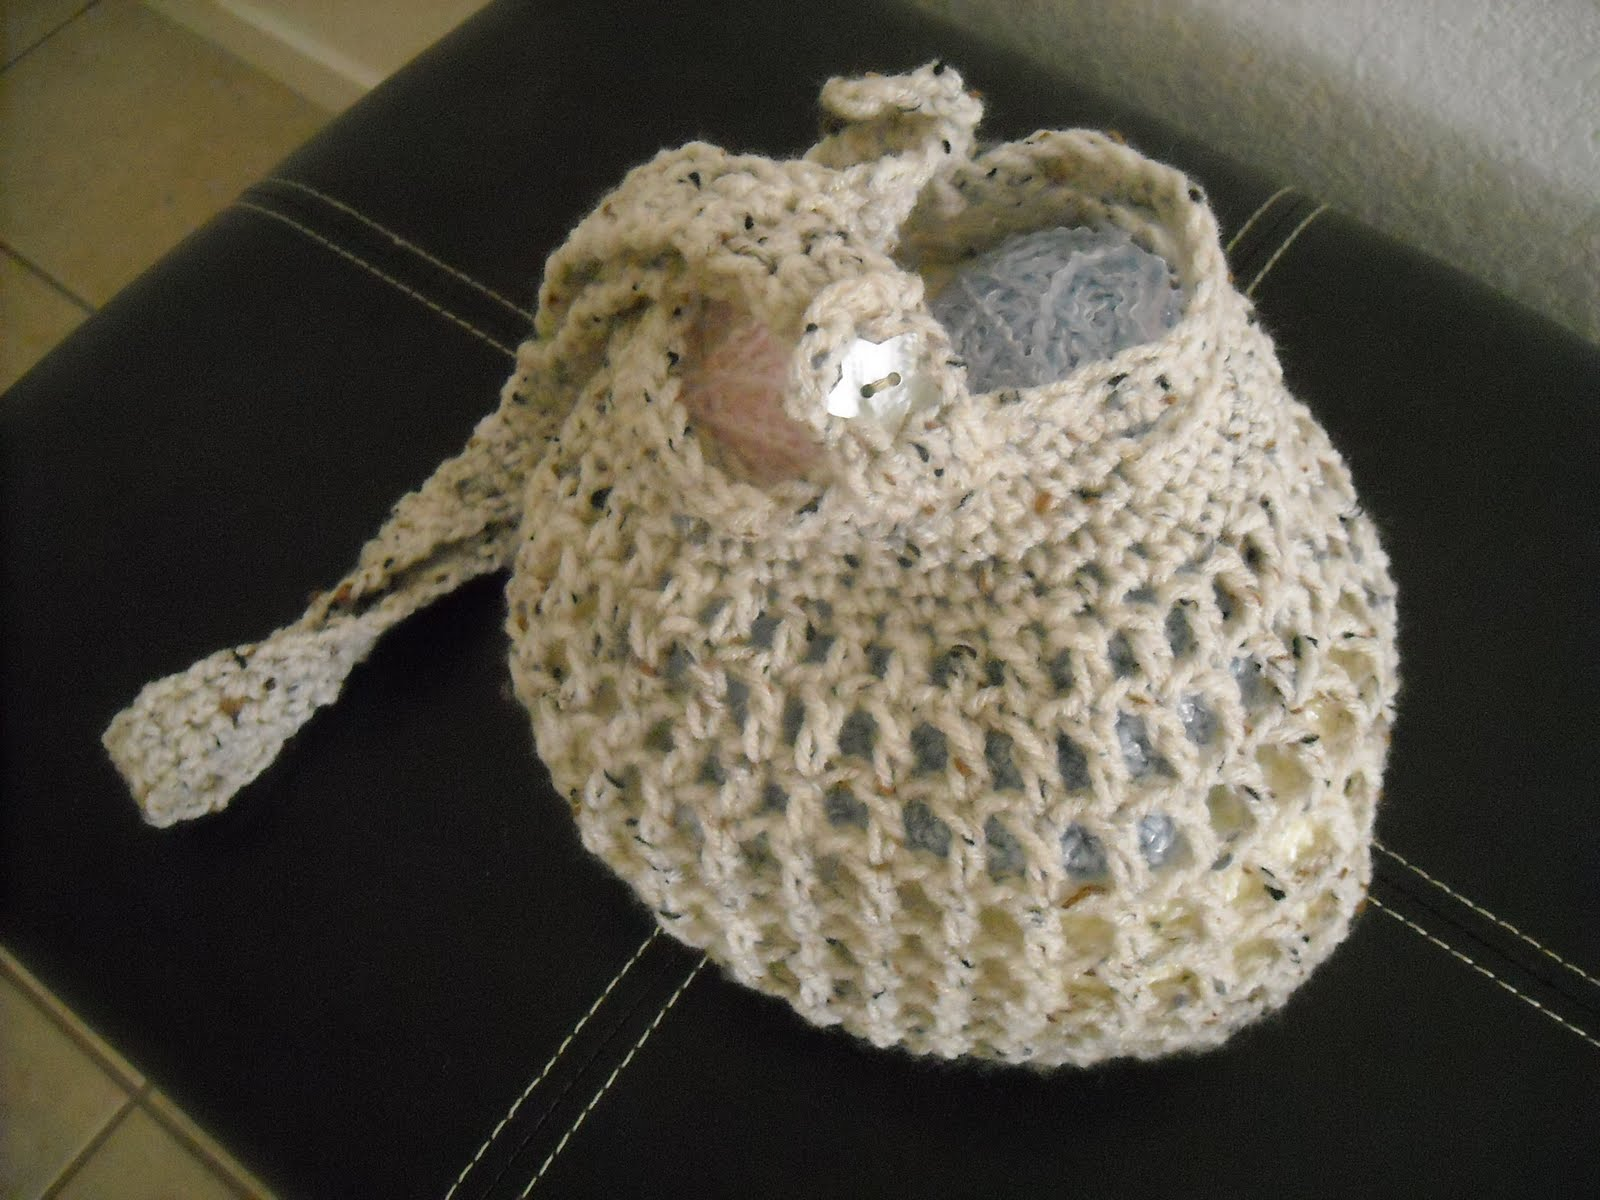 Crochet Shoulder Bag Pattern Free : ... through the chain 3 space at the top of bag and button ends of strap